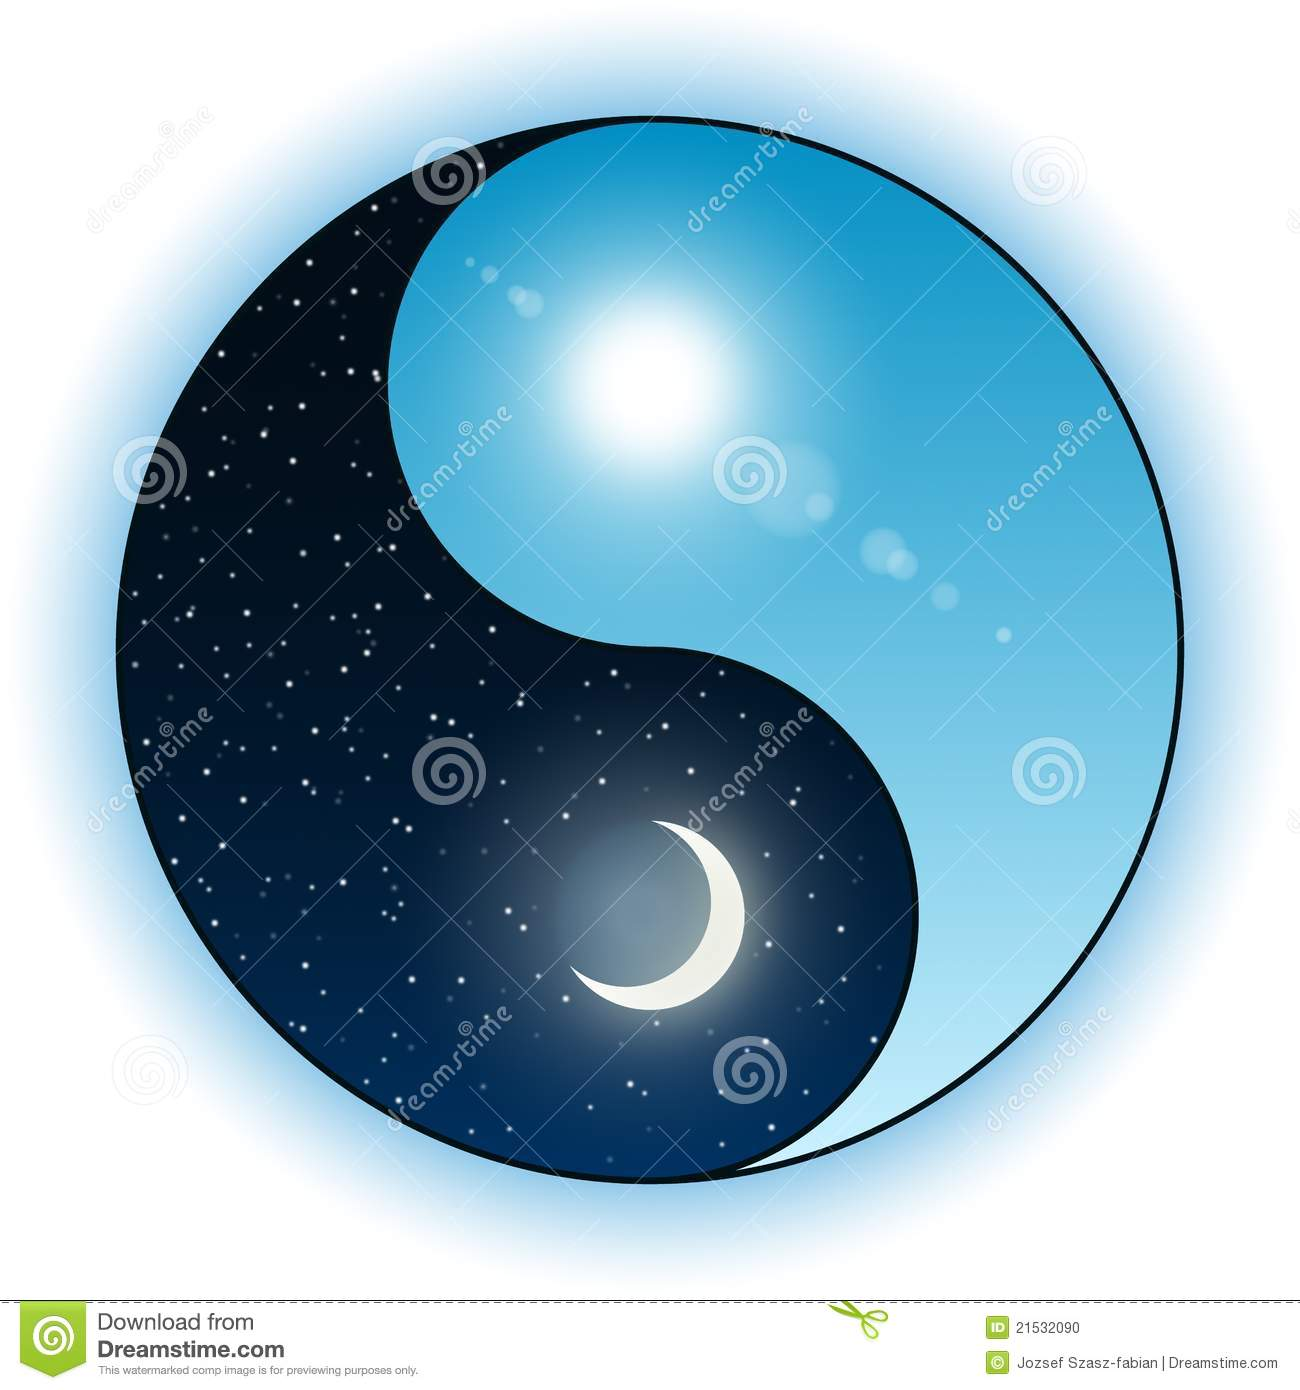 Sun and moon in yin yang symbol stock vector illustration of sun and moon in yin yang symbol biocorpaavc Images